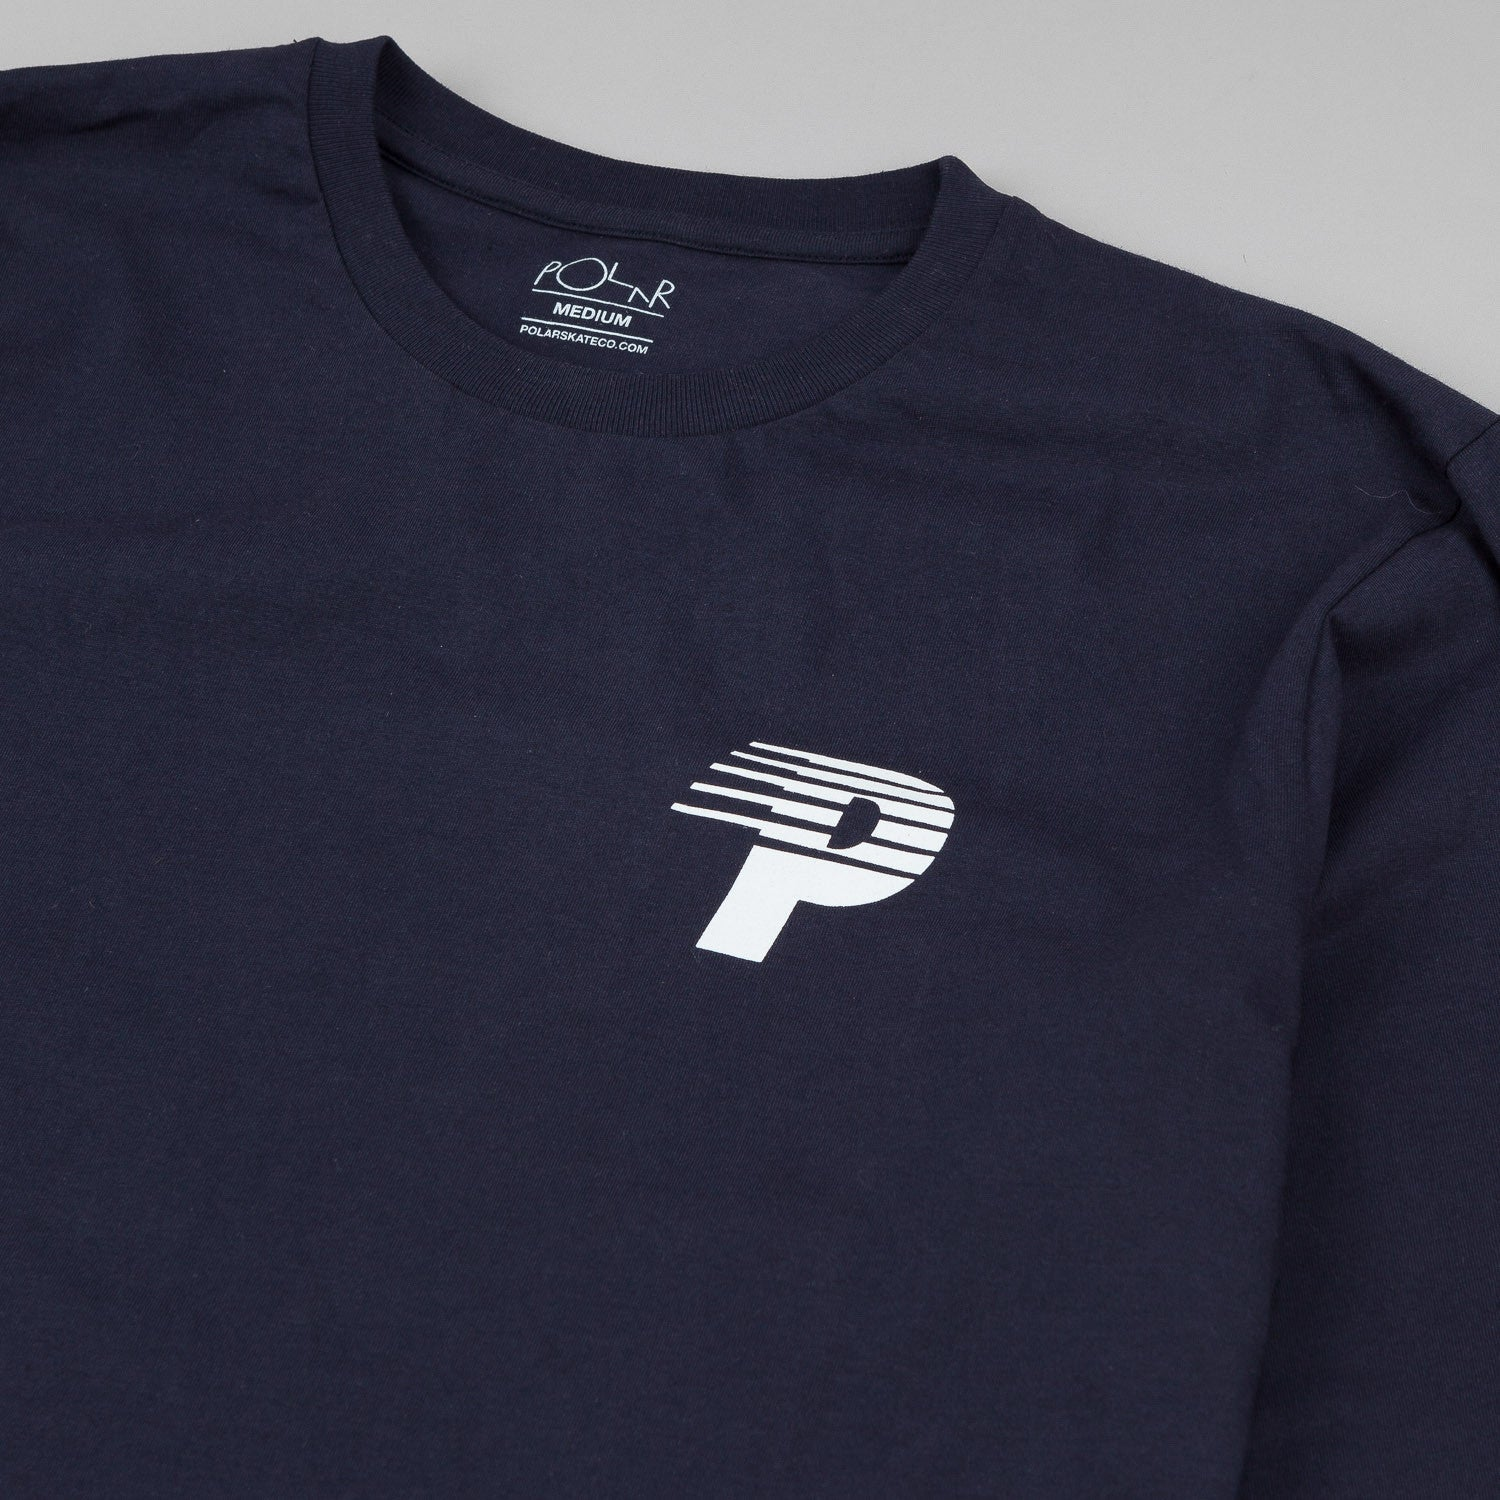 Polar Speedy-P Racing Arm & Chest Print Long Sleeve T-Shirt Navy